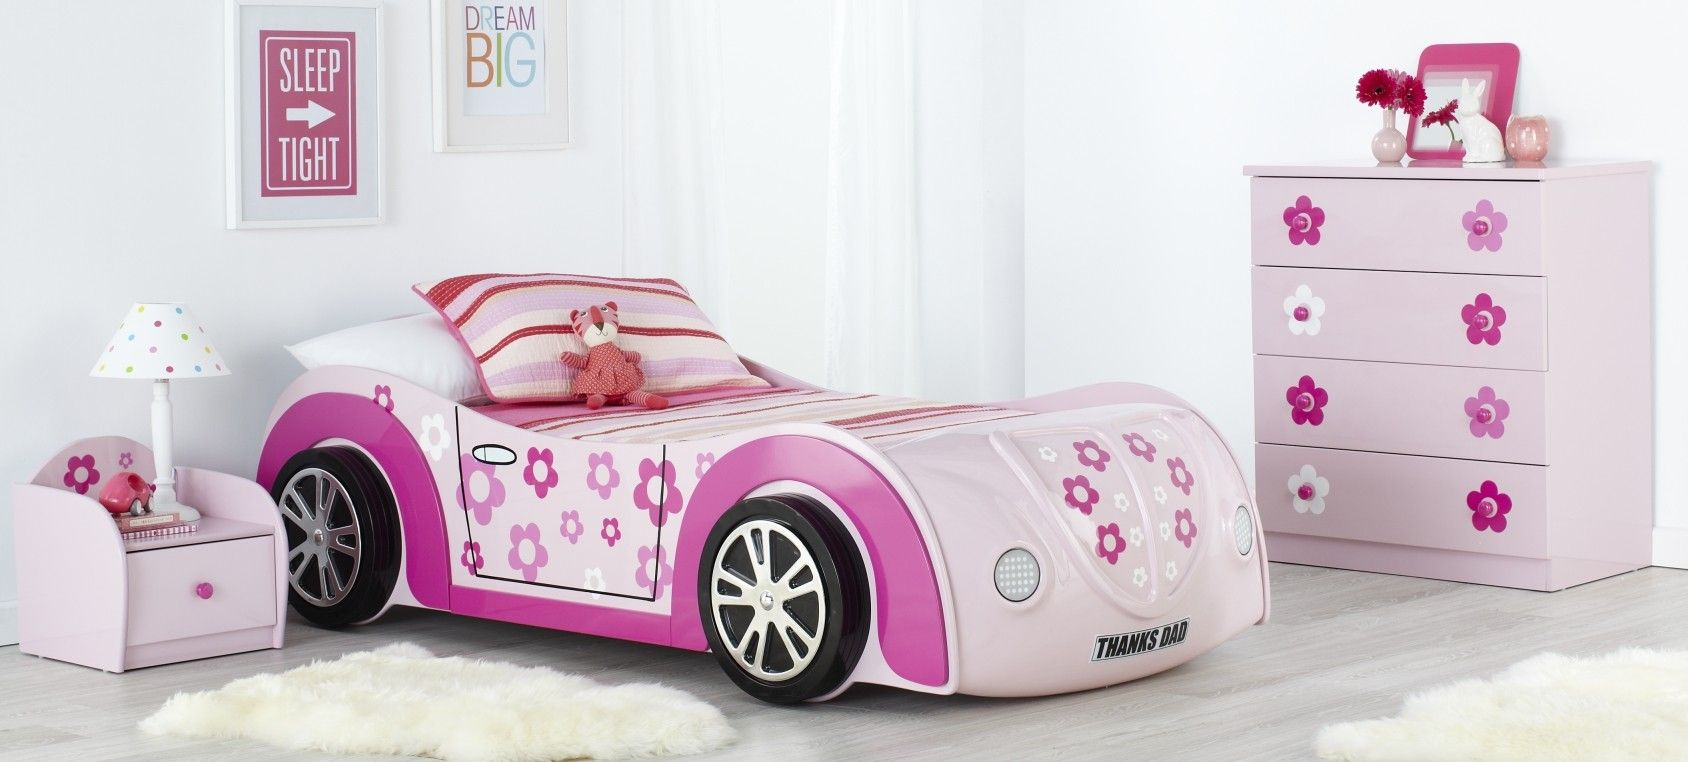 Daisy kids car bed and themed bedroom furniture suite with pink ...